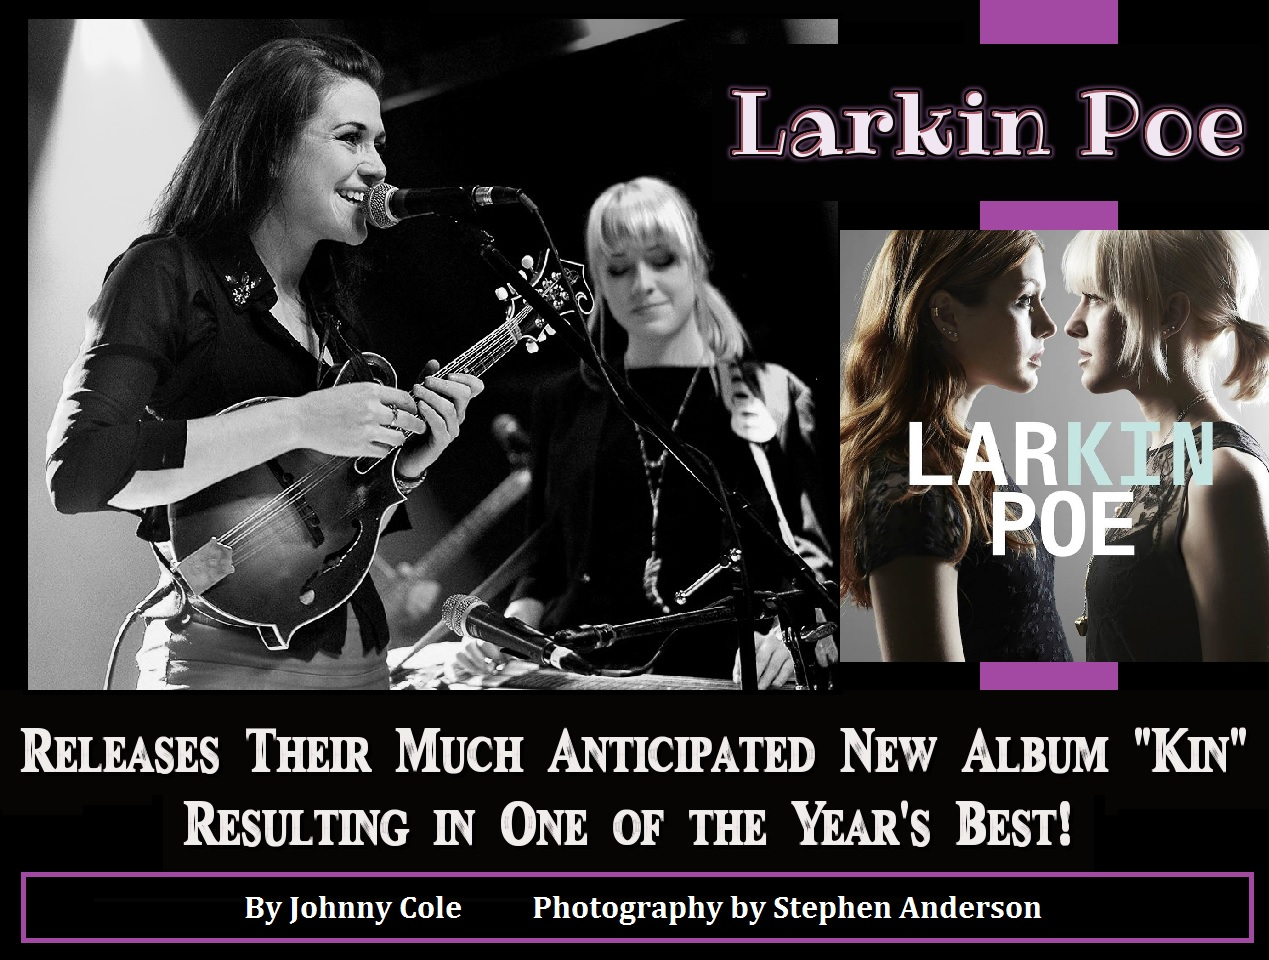 http://www.thesouthlandmusicline.com/wp-content/uploads/2014/10/Larkin-Poe-Releases-Their-Much-Anticipated-New-Album-Kin-Resulting-in-One-of-the-Years-Best.jpg